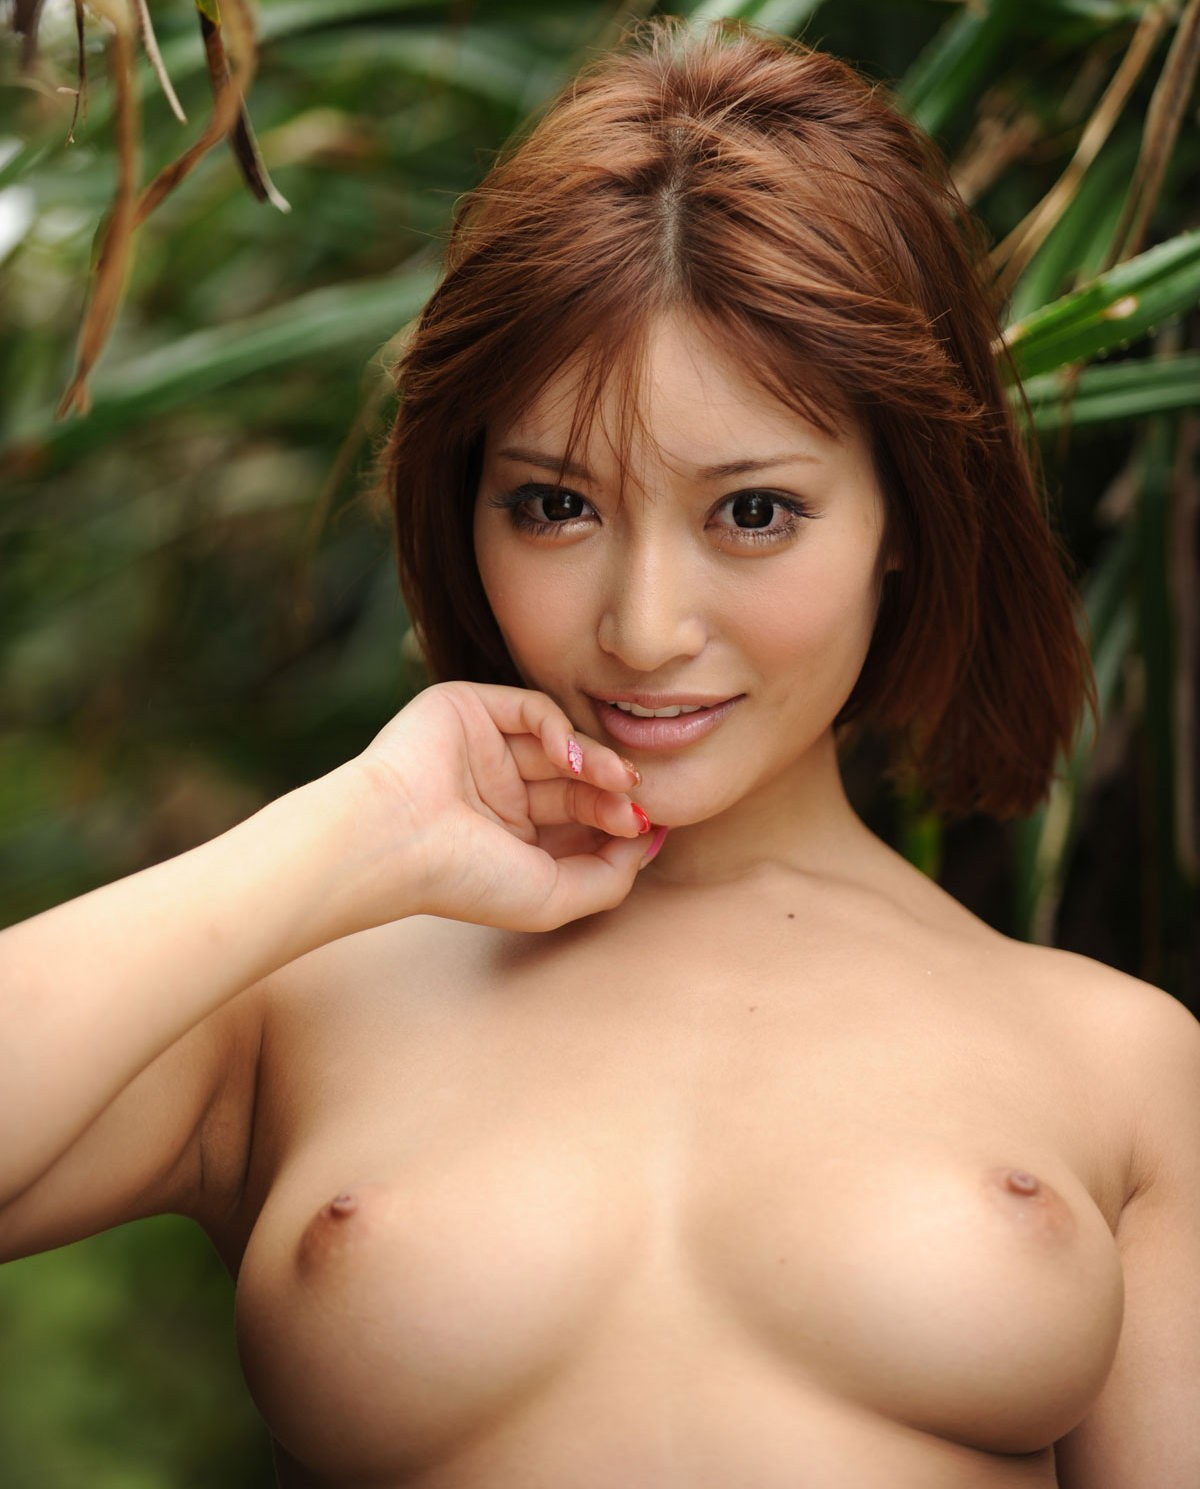 photos of nude curvey women